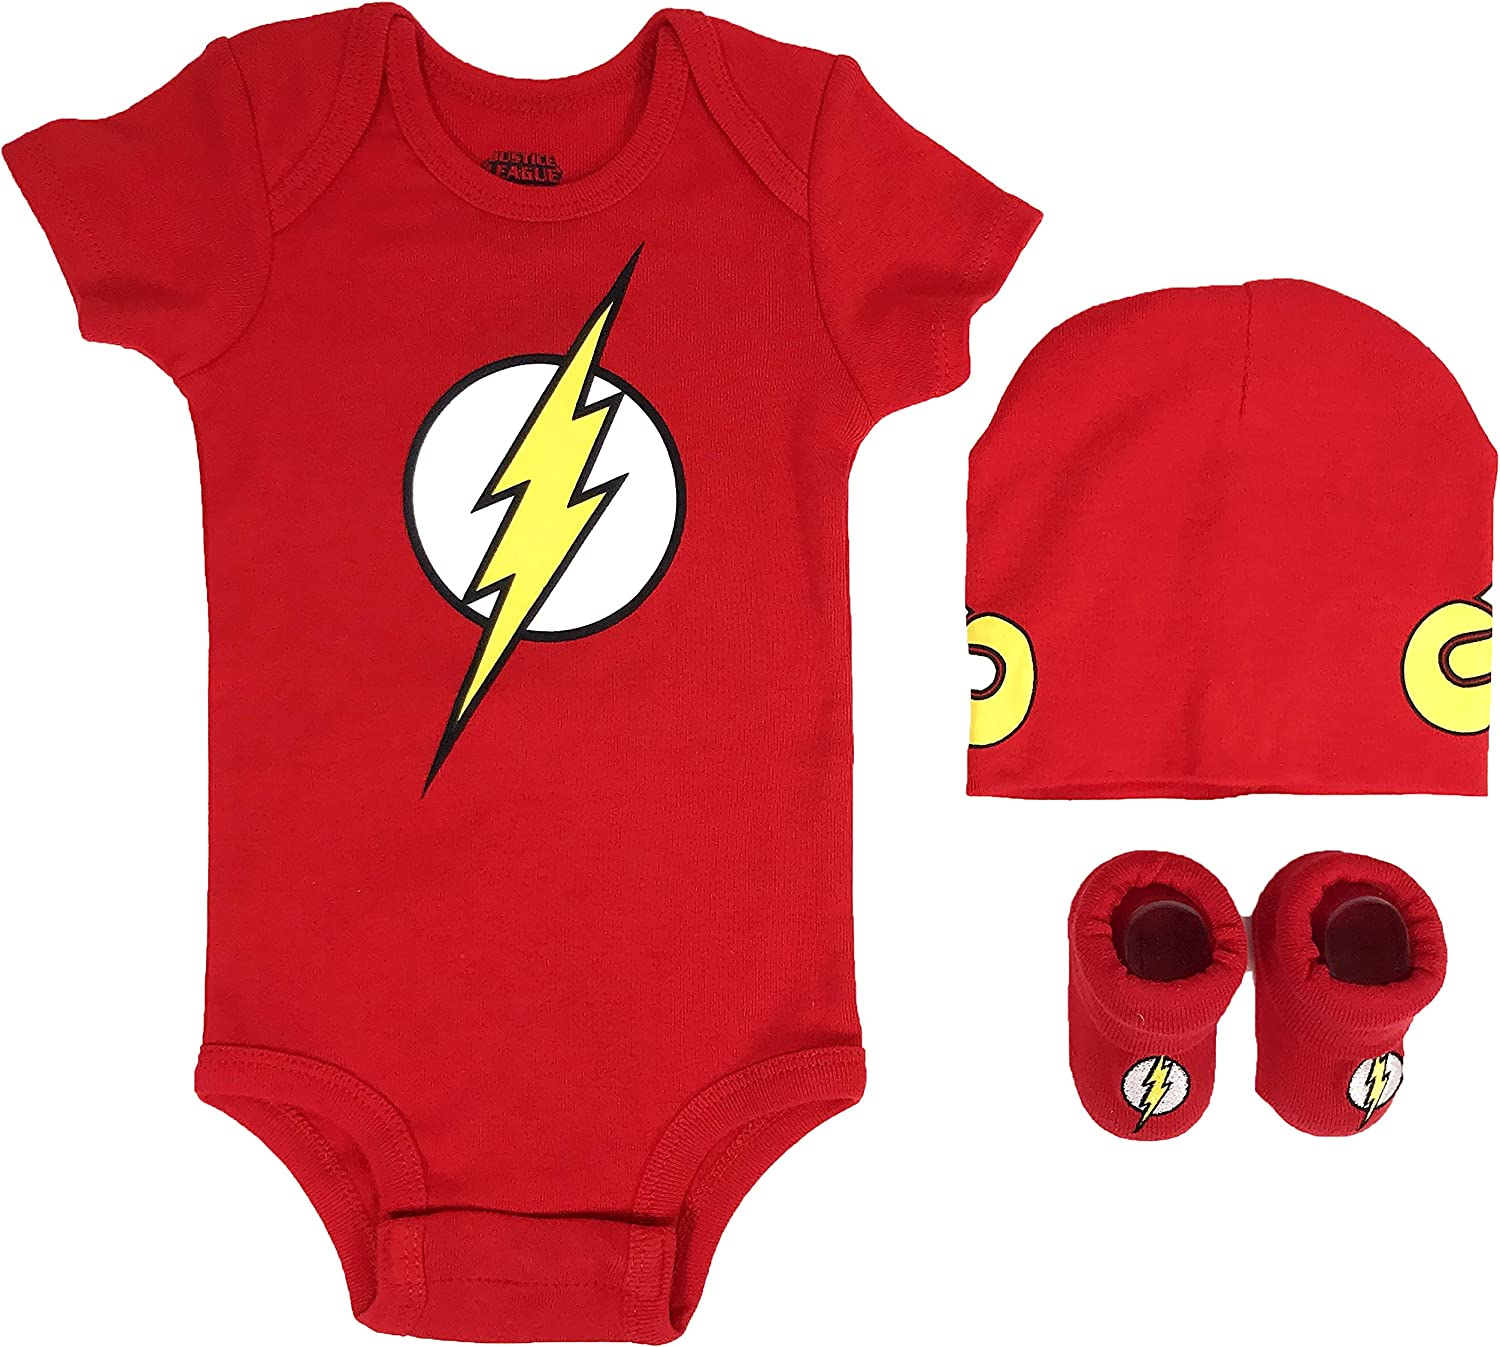 DC Comics Baby Boy's Superman, Wonder Woman, Flash, Batman 3-pc Set in Gift Box Baby Costume